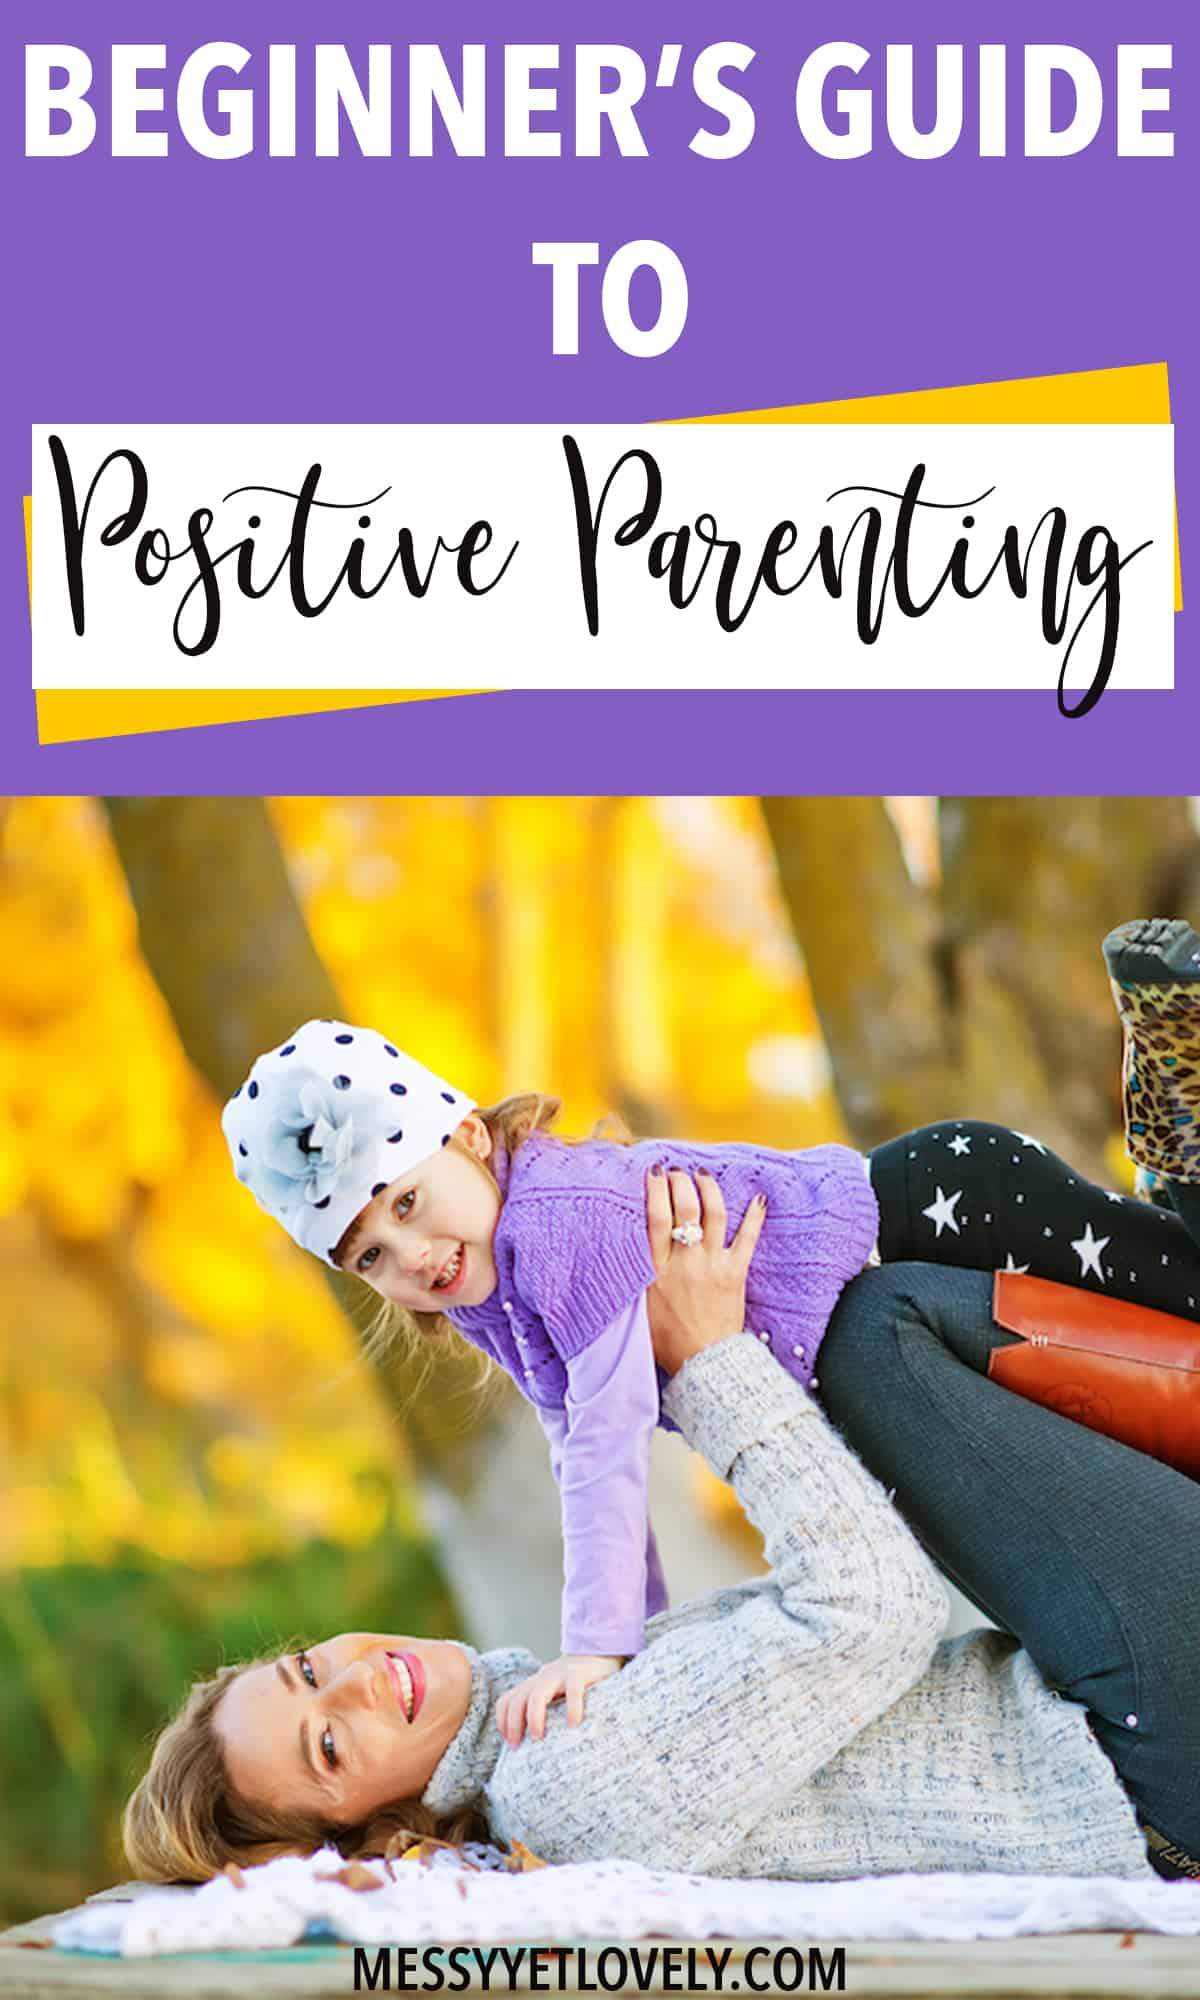 Positive parenting is based on gentle discipline techniques where the mental and emotional health of children are also taken into consideration. Click to find out how you can get started with positive parenting.